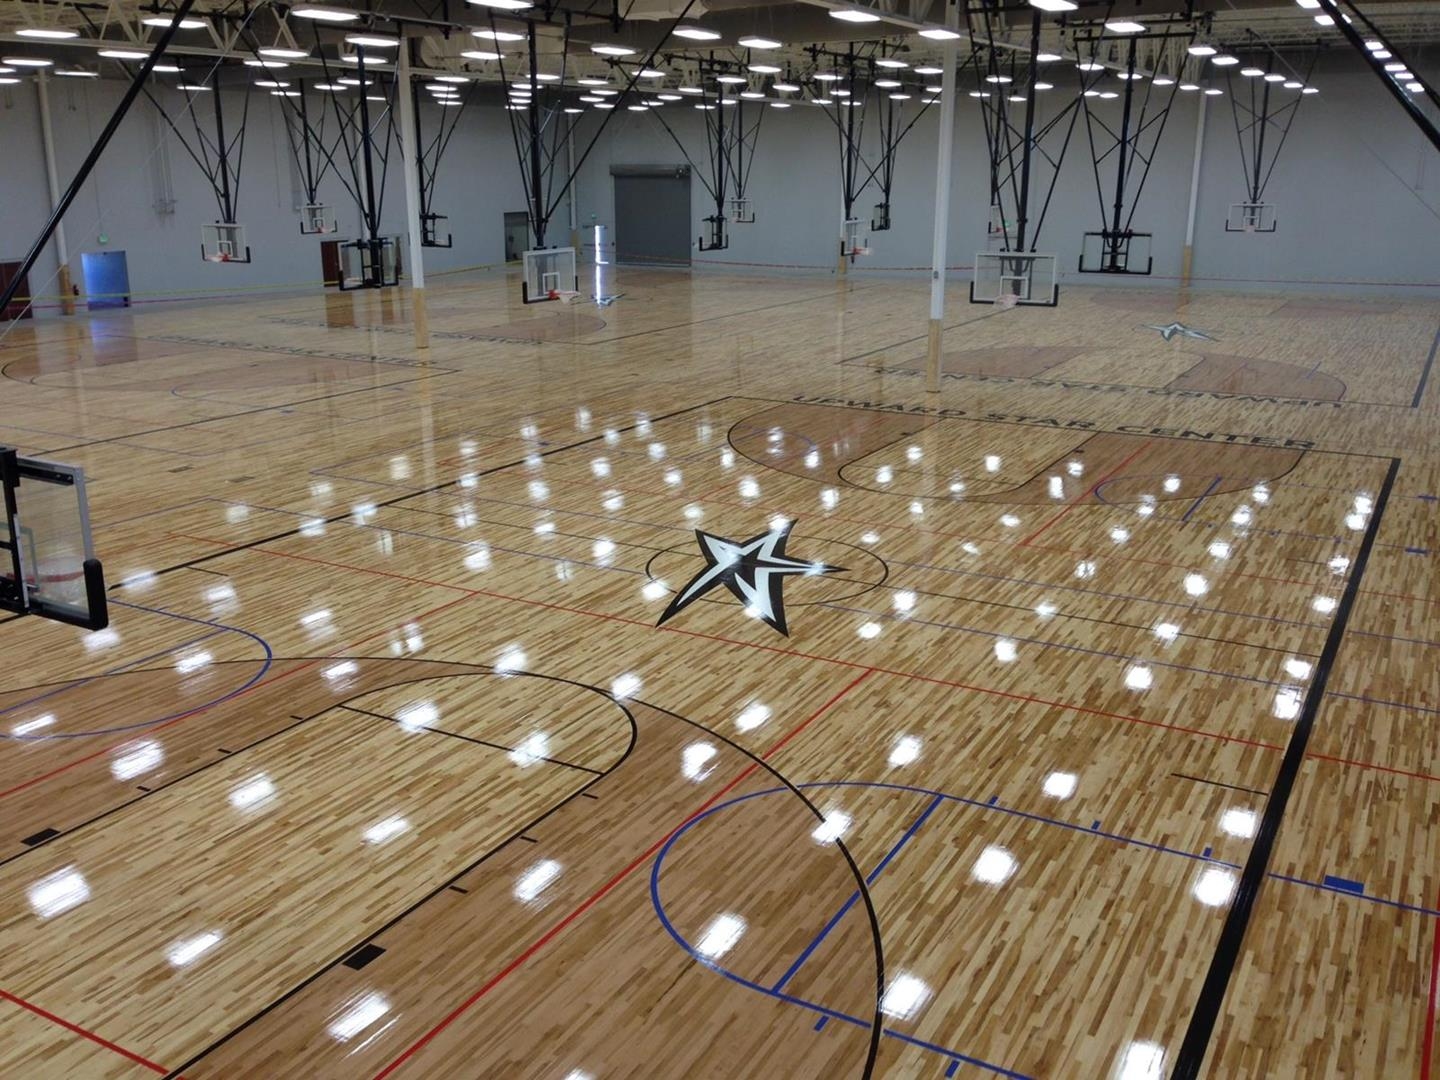 multiple basketball court diagram 2016 f150 stereo wiring 9 top indoor facilities for sports planning guide